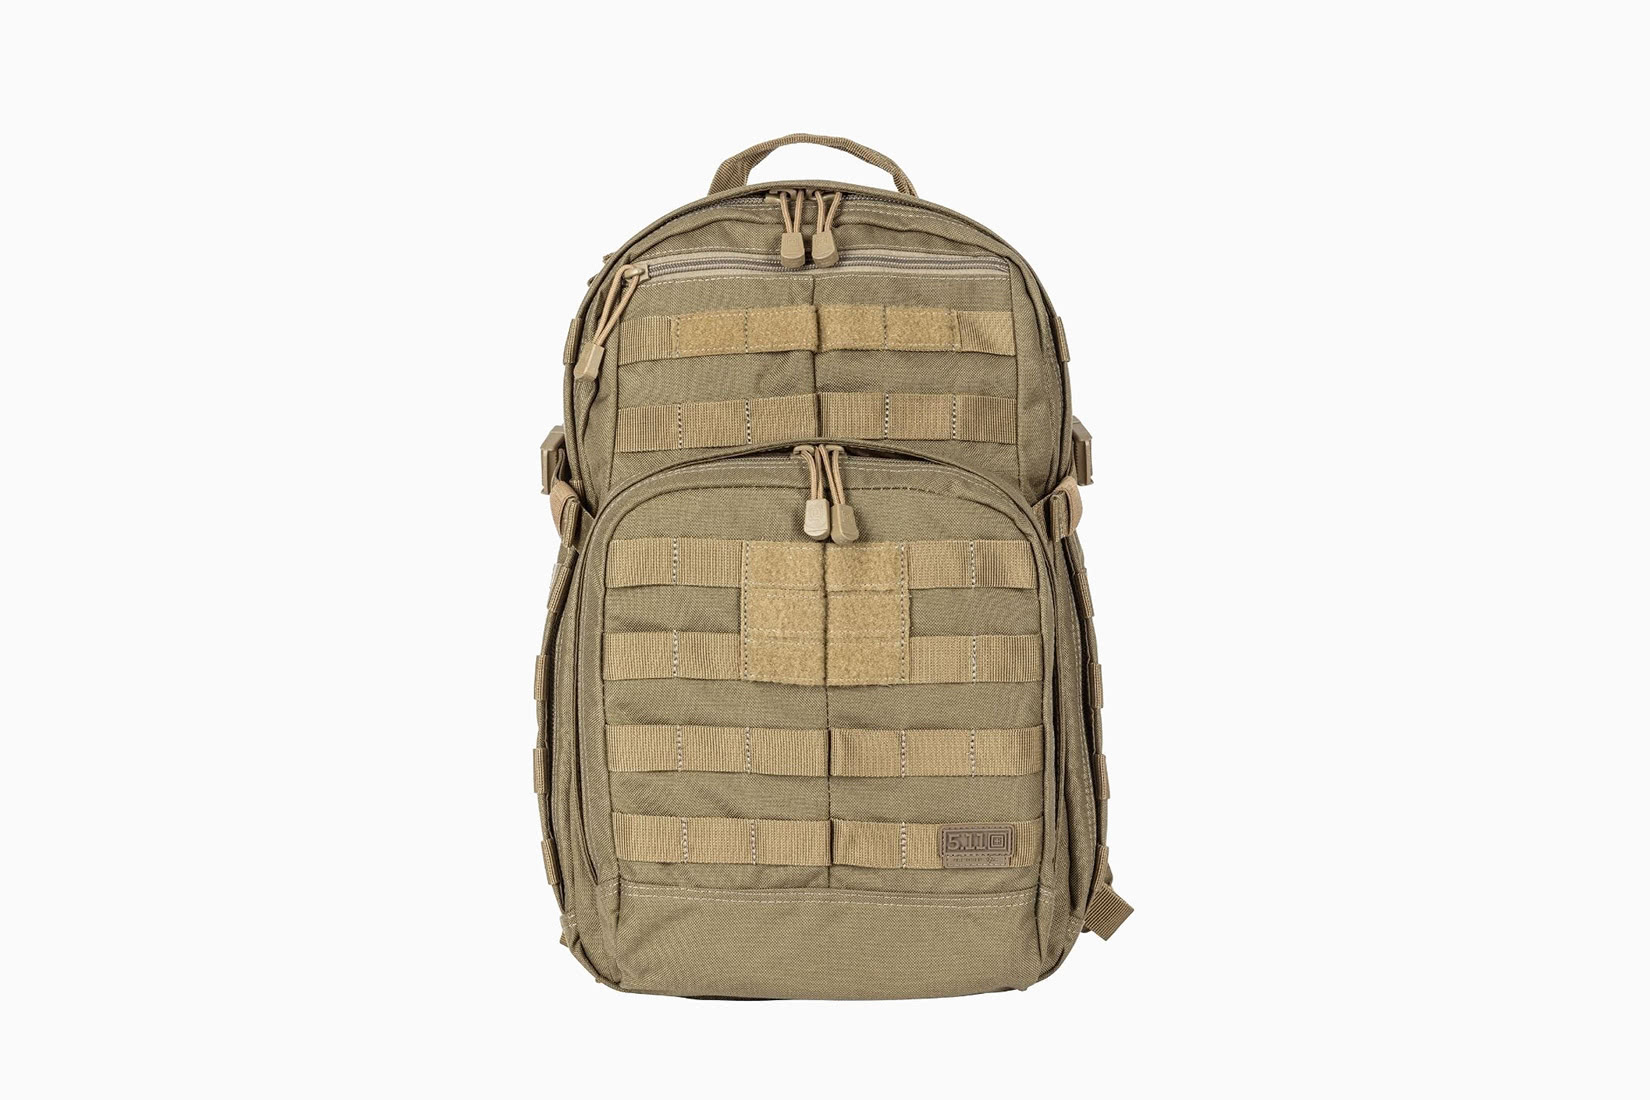 best tactical backpack 5.11 rush 24 - Luxe Digital